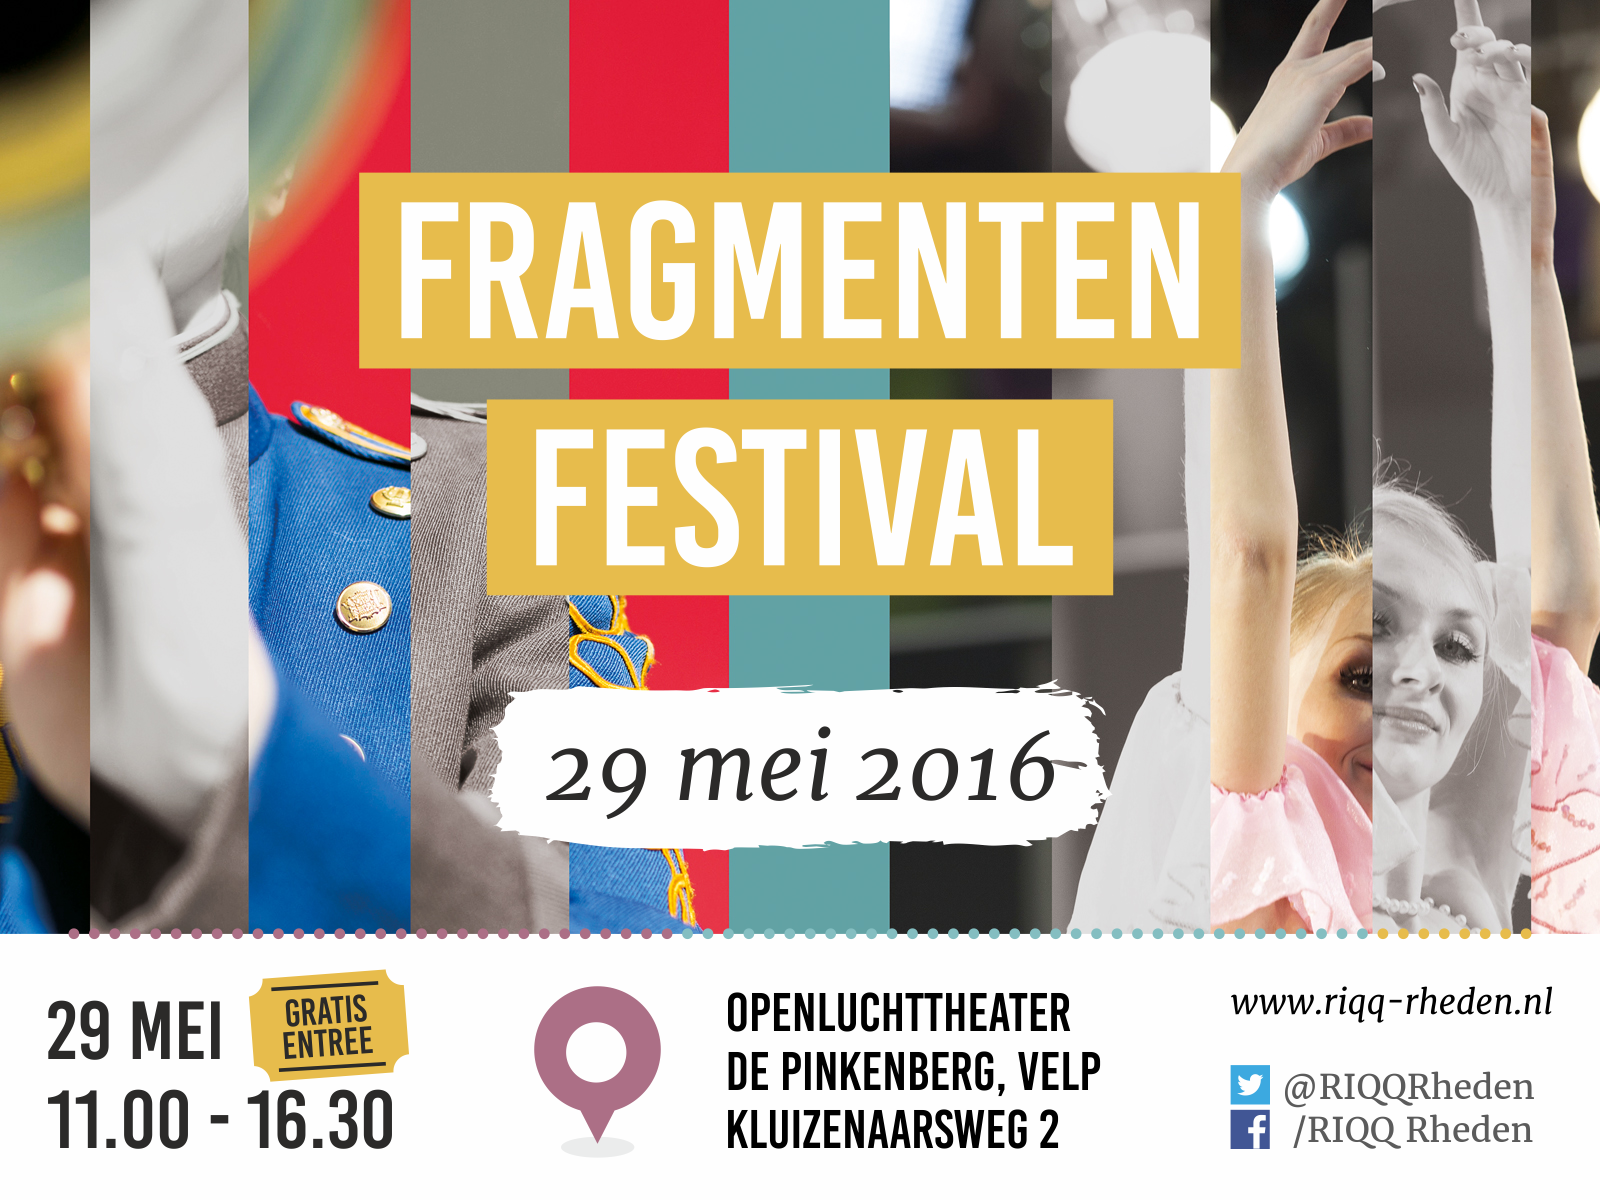 FragmentenFestival 2016.png